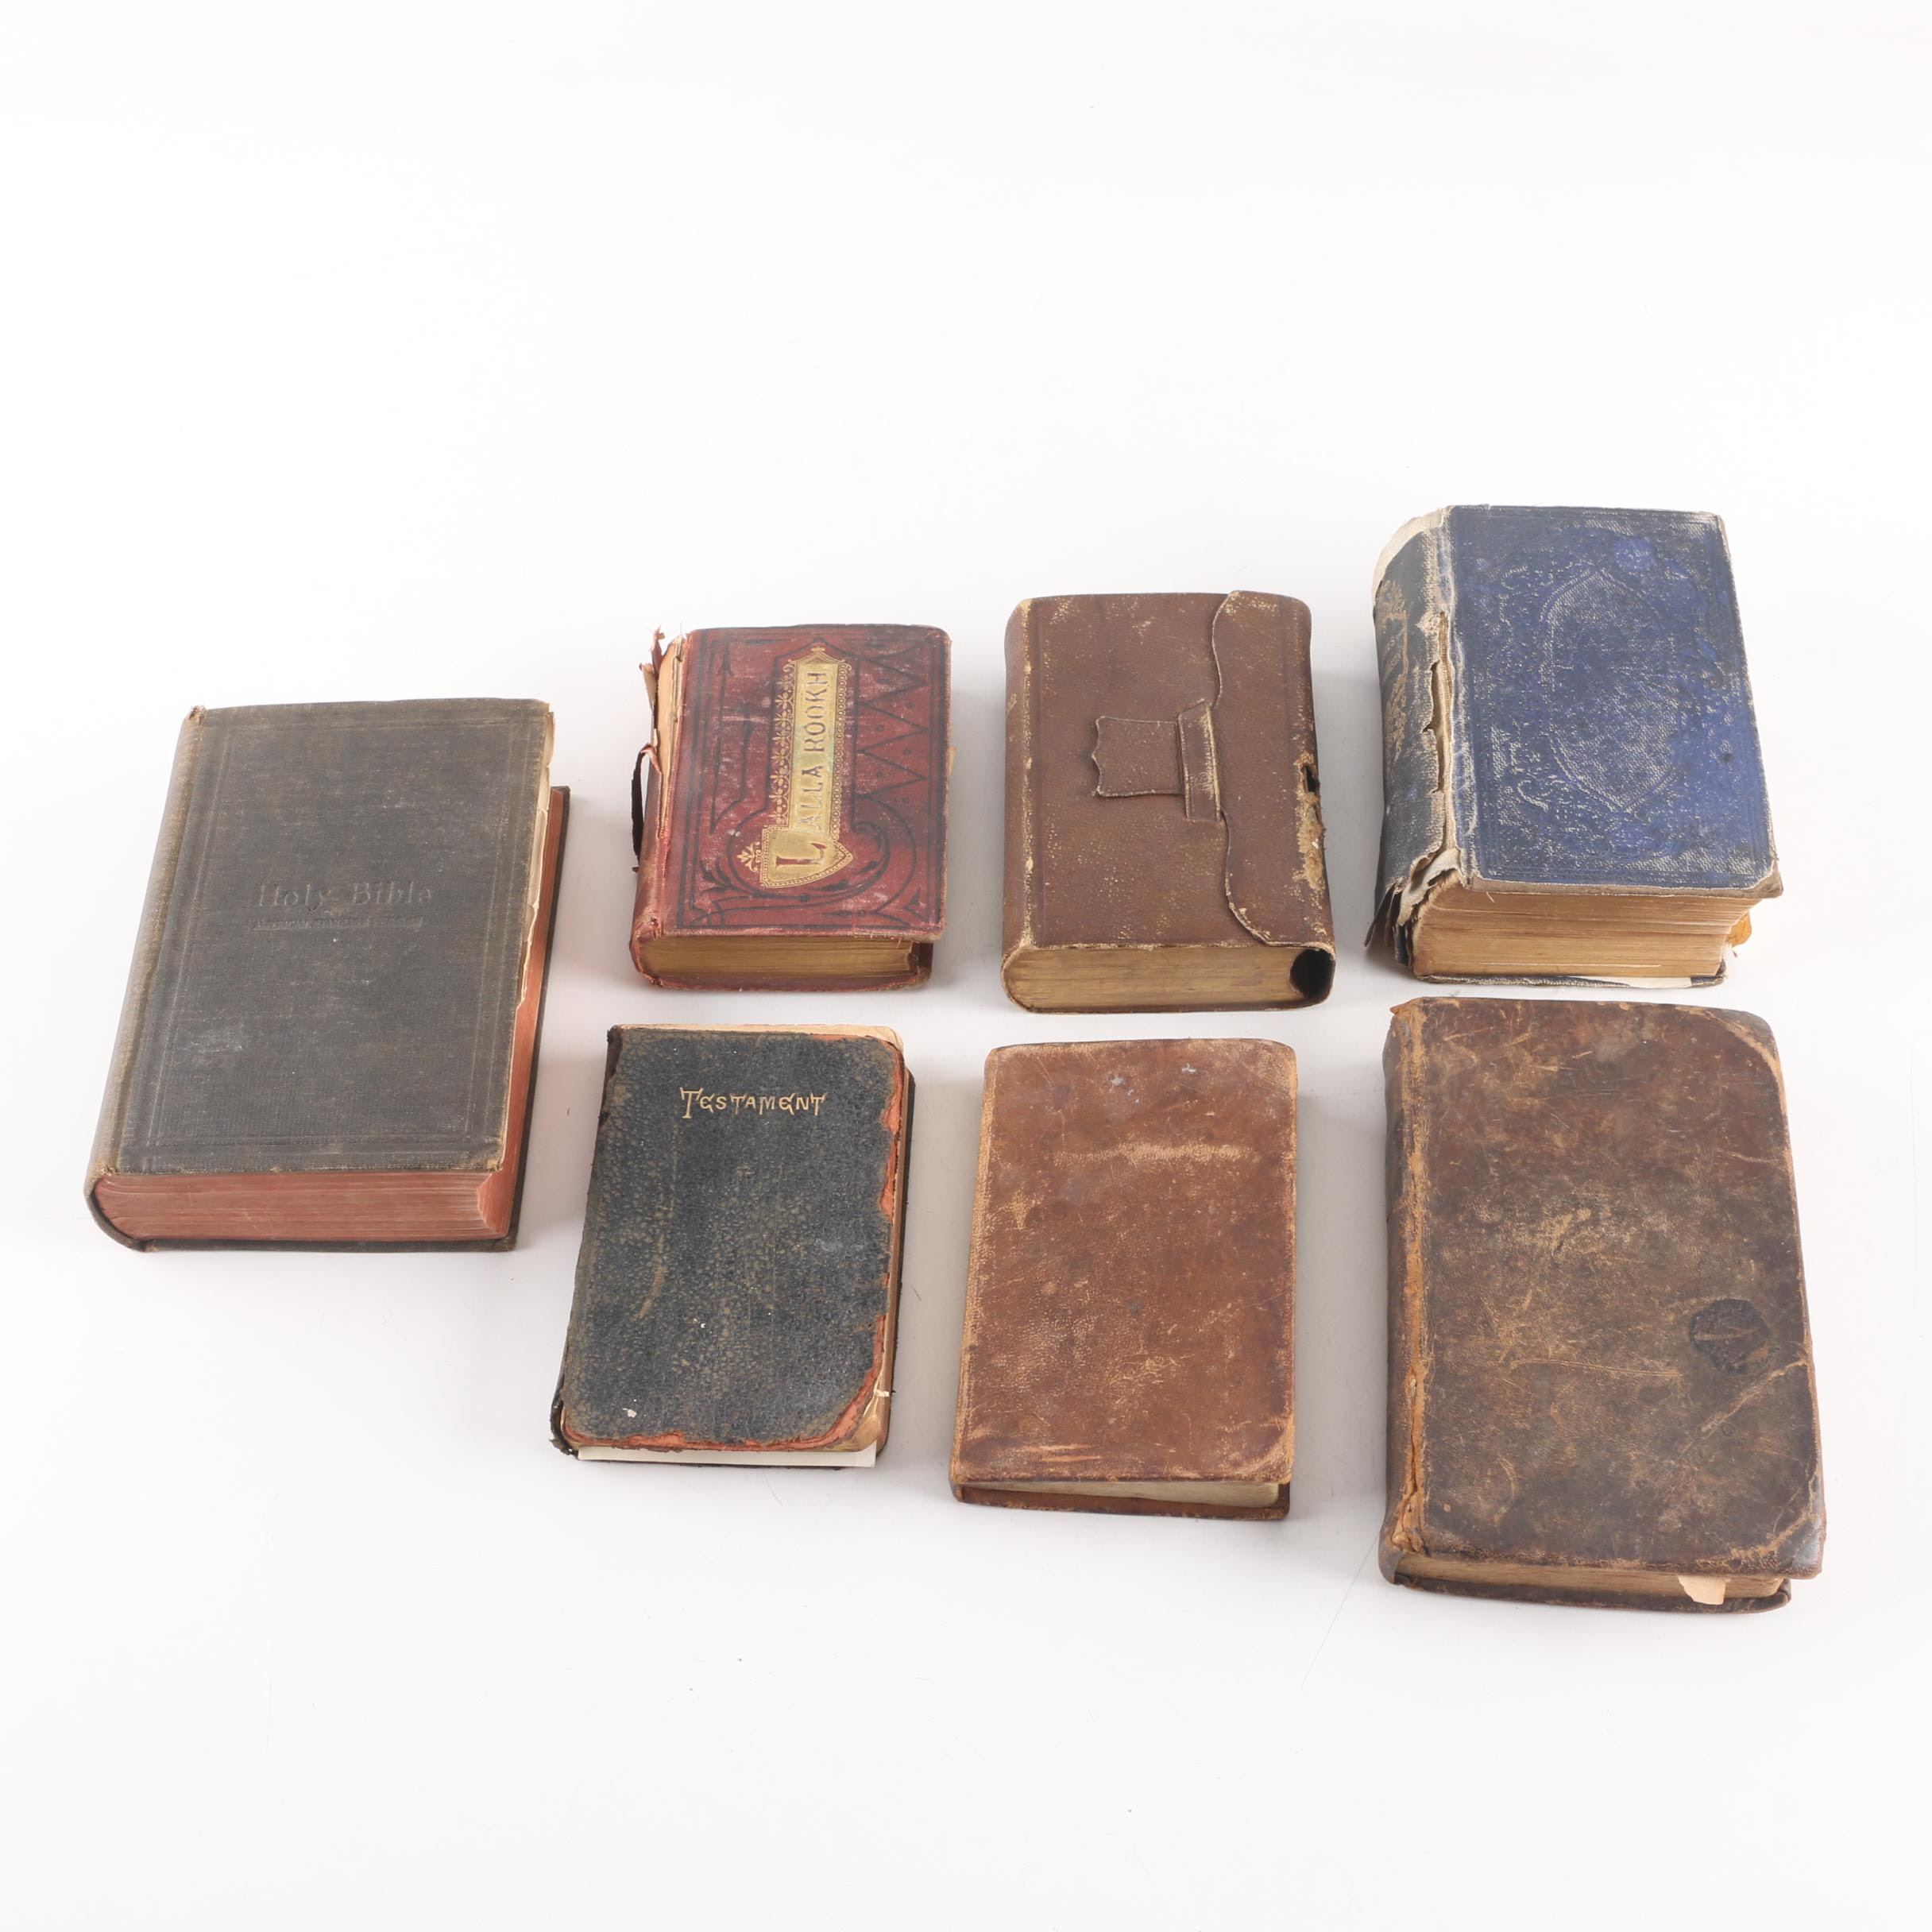 "Antique Books Including Bibles, Essays of Emerson, ""Lalla-Rookh"""